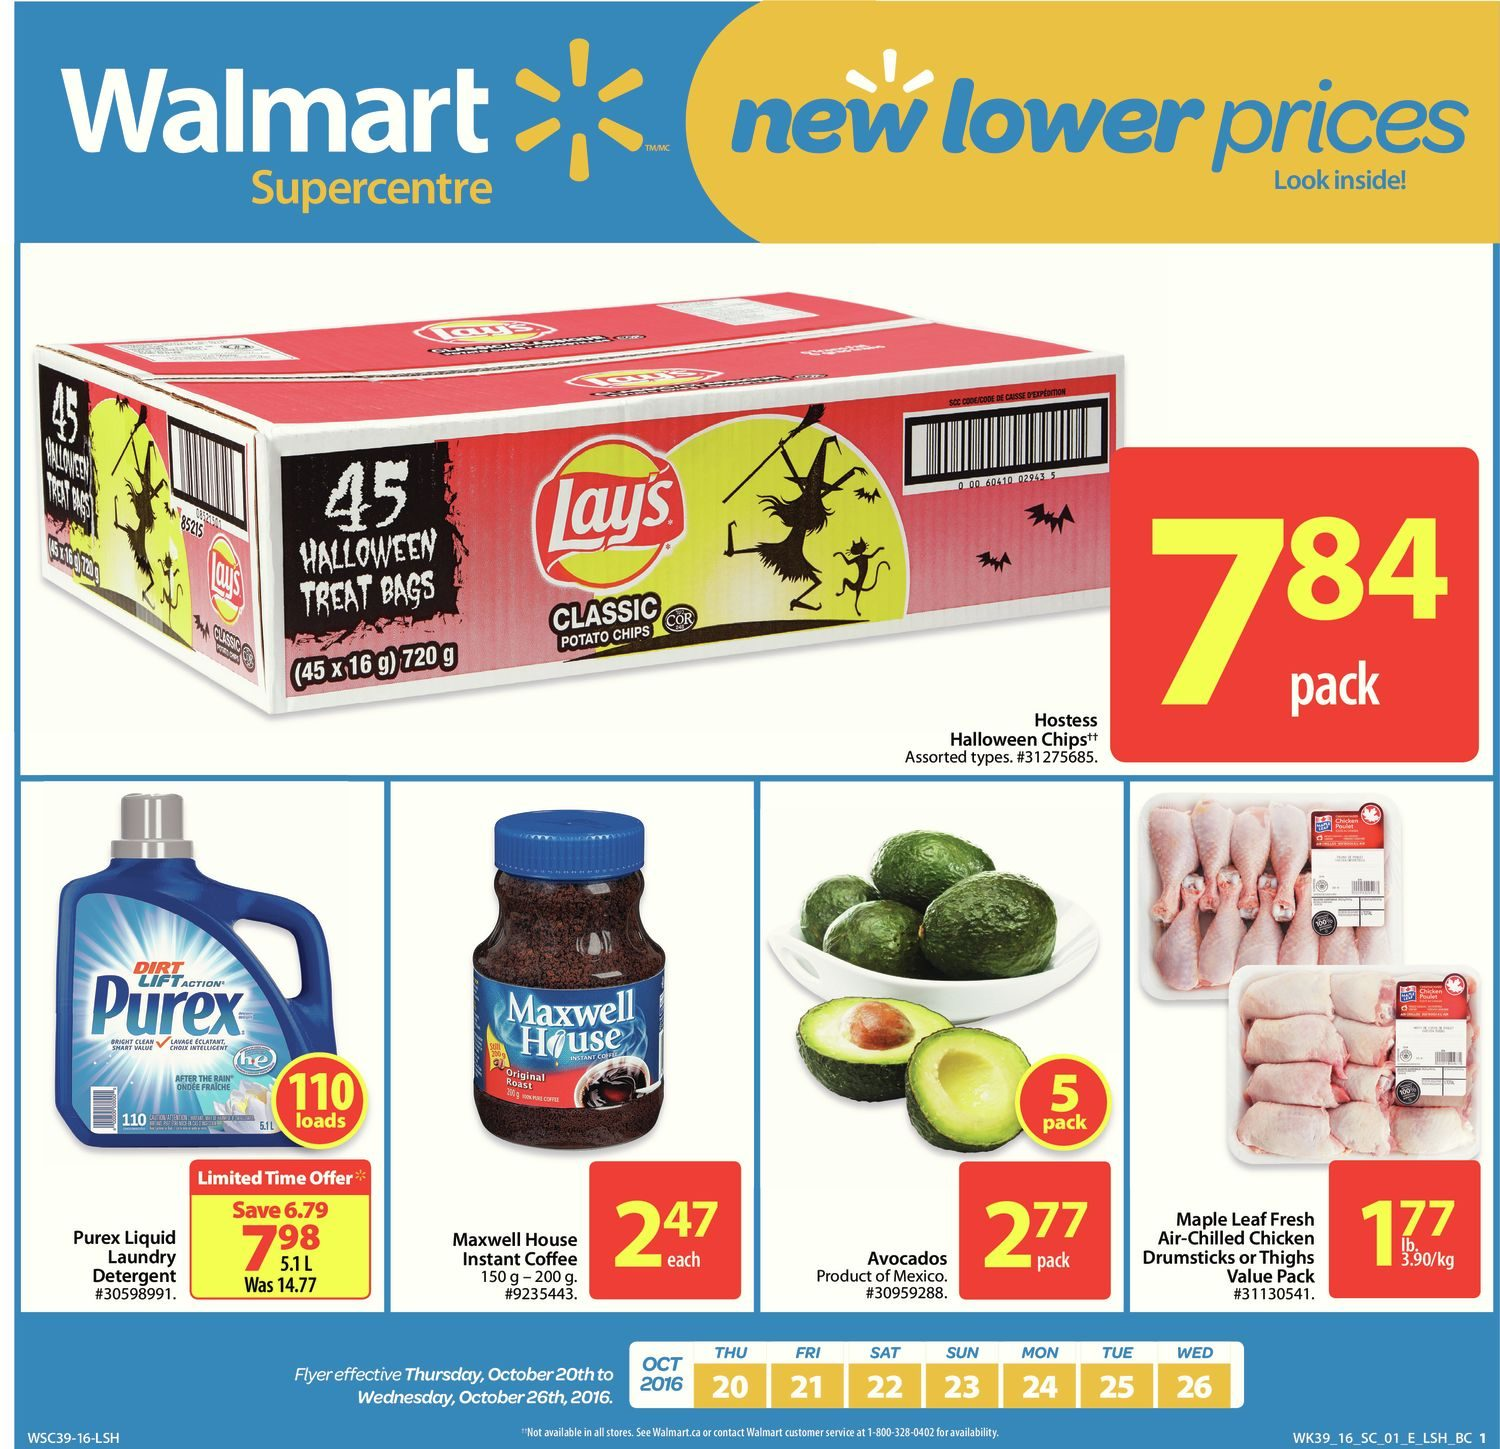 Walmart Weekly Flyer Supercentre New Lower Prices Oct 20 26 Minute Maid Homestyle Orange 1l